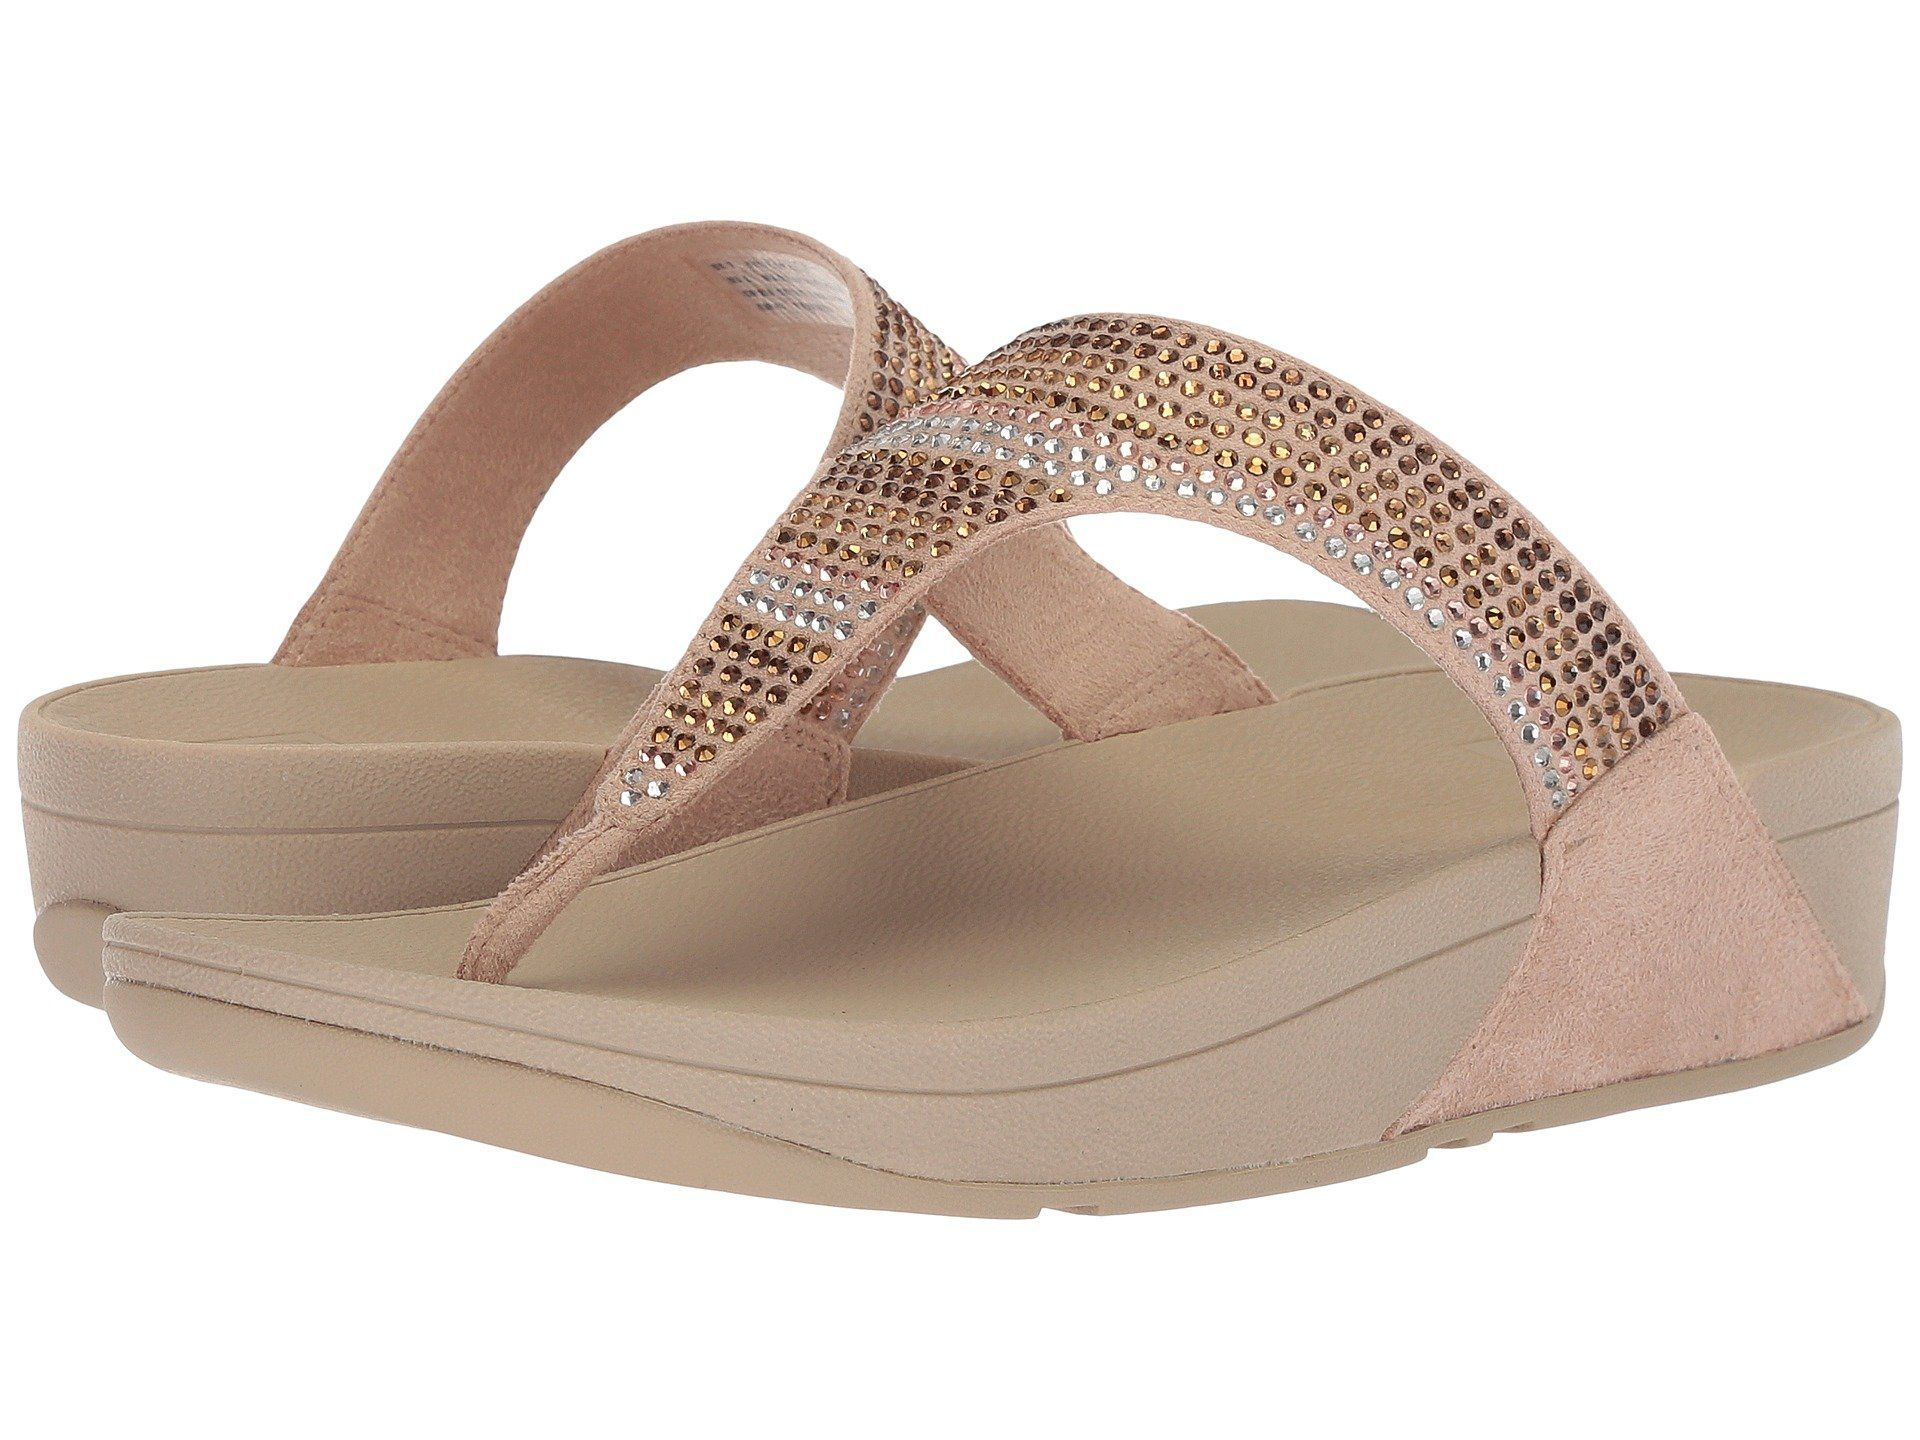 0bd3c6e3d2a0 FITFLOP Strobe Luxe Toe-Thong Sandals.  fitflop  shoes